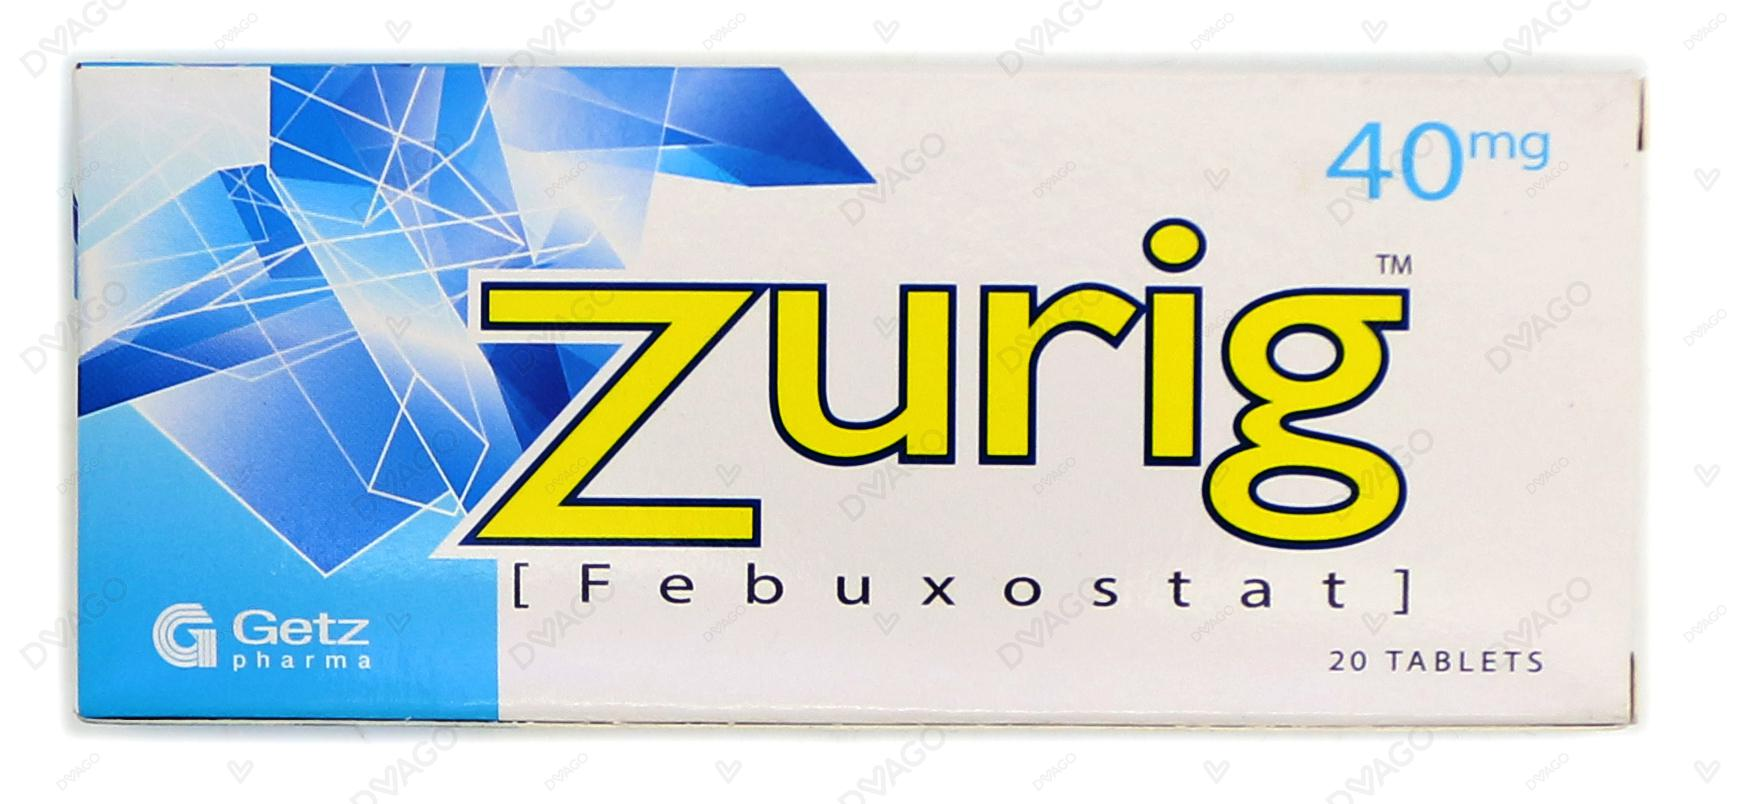 Zurig Tablets 40mg 20's